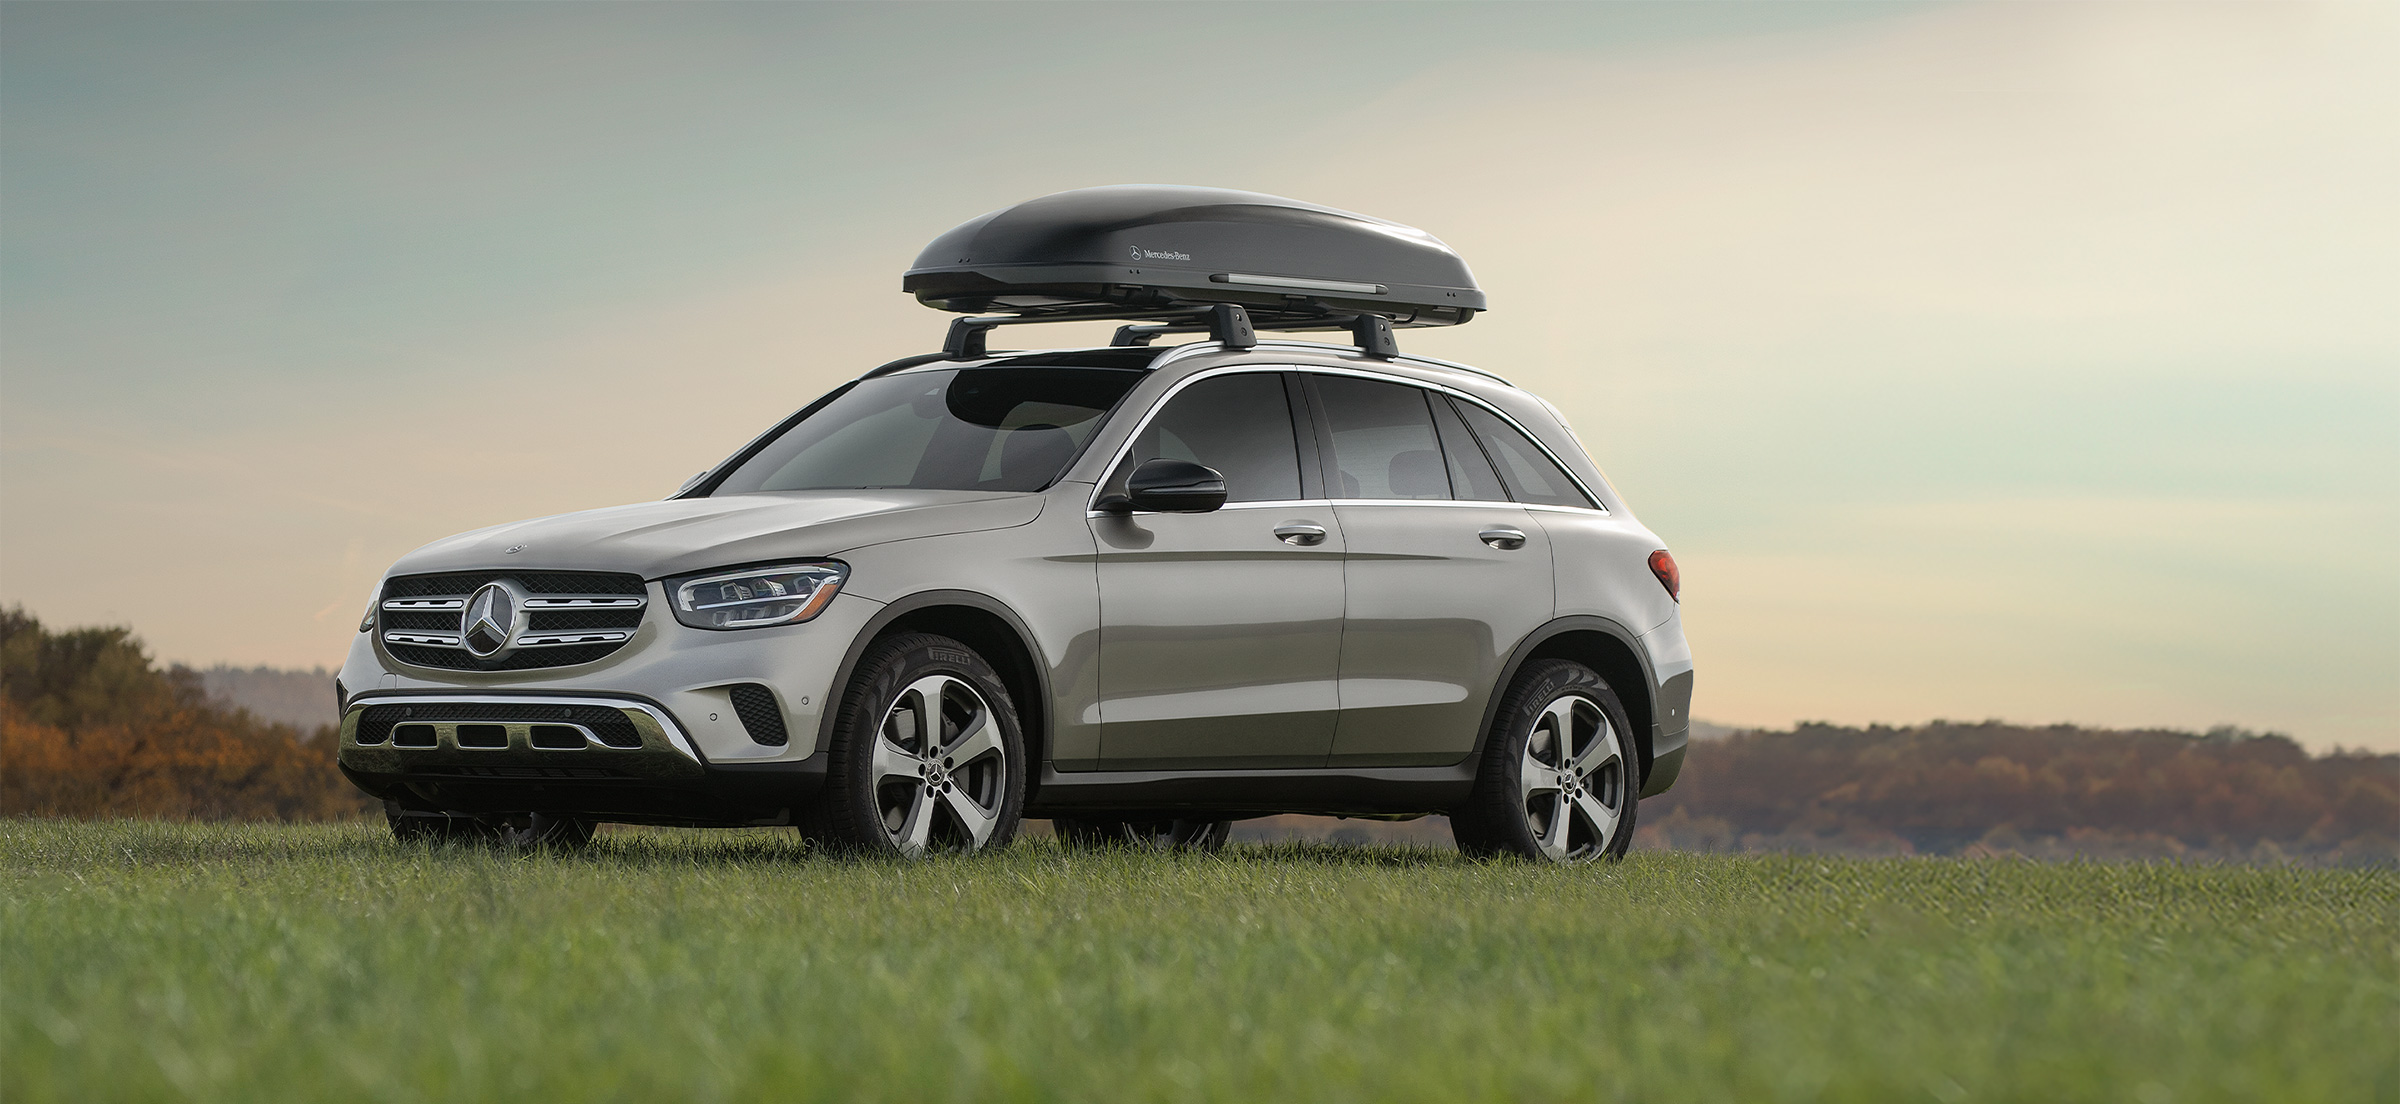 Mercedes-Benz GLC with Cargo Rack storage on the hood of the vehicle.